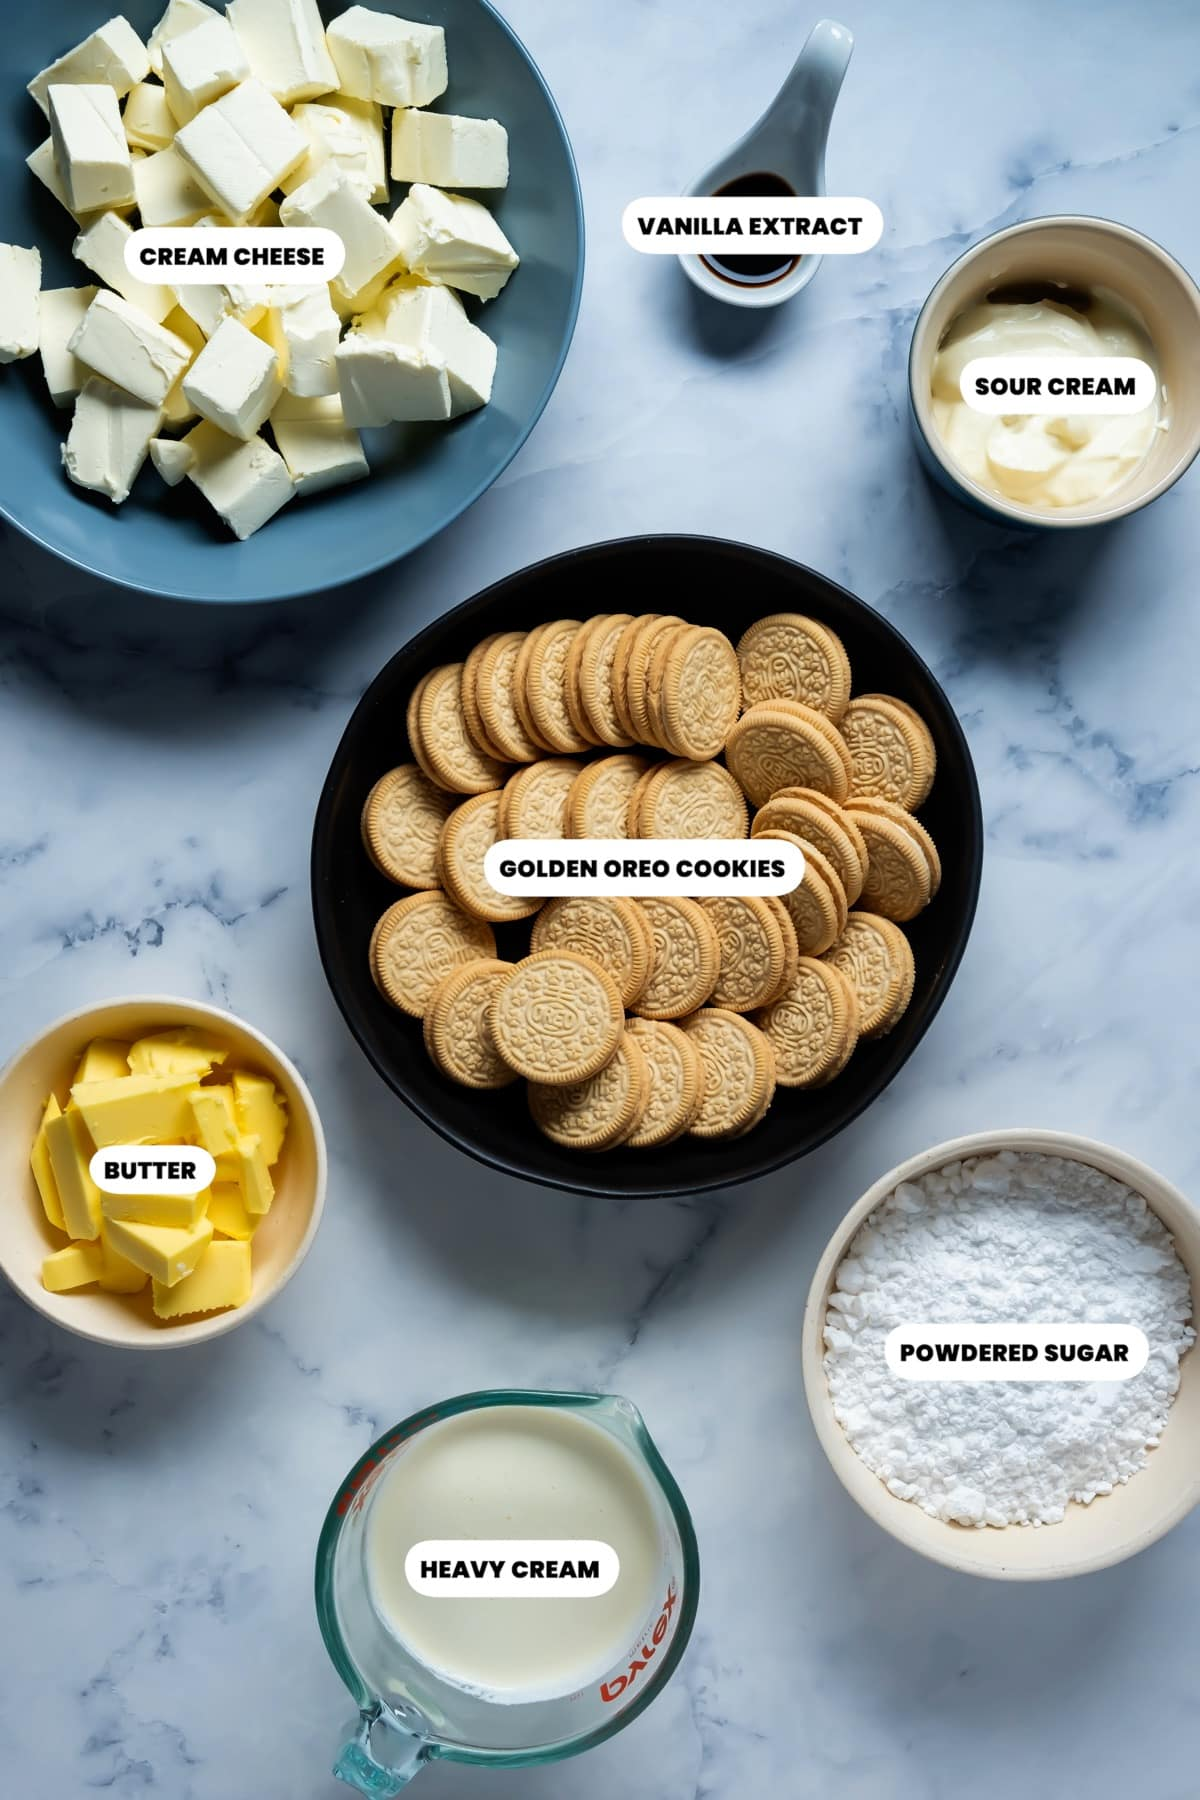 Photo of the ingredients needed to make golden oreo cheesecake.